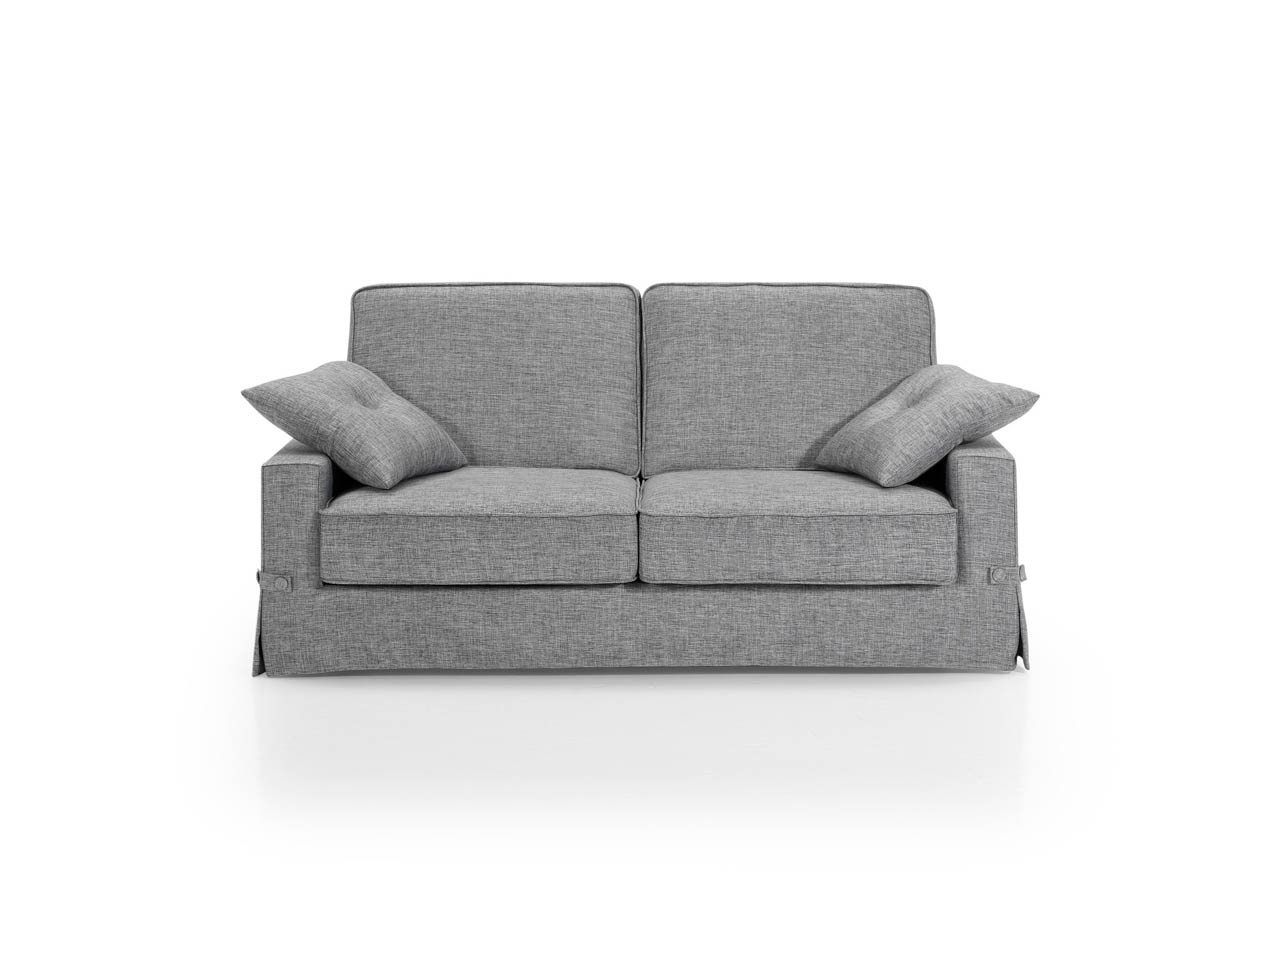 sofa cama chaise longue sistema italiano replacement cushions feather comprar sofas lamesadecentro